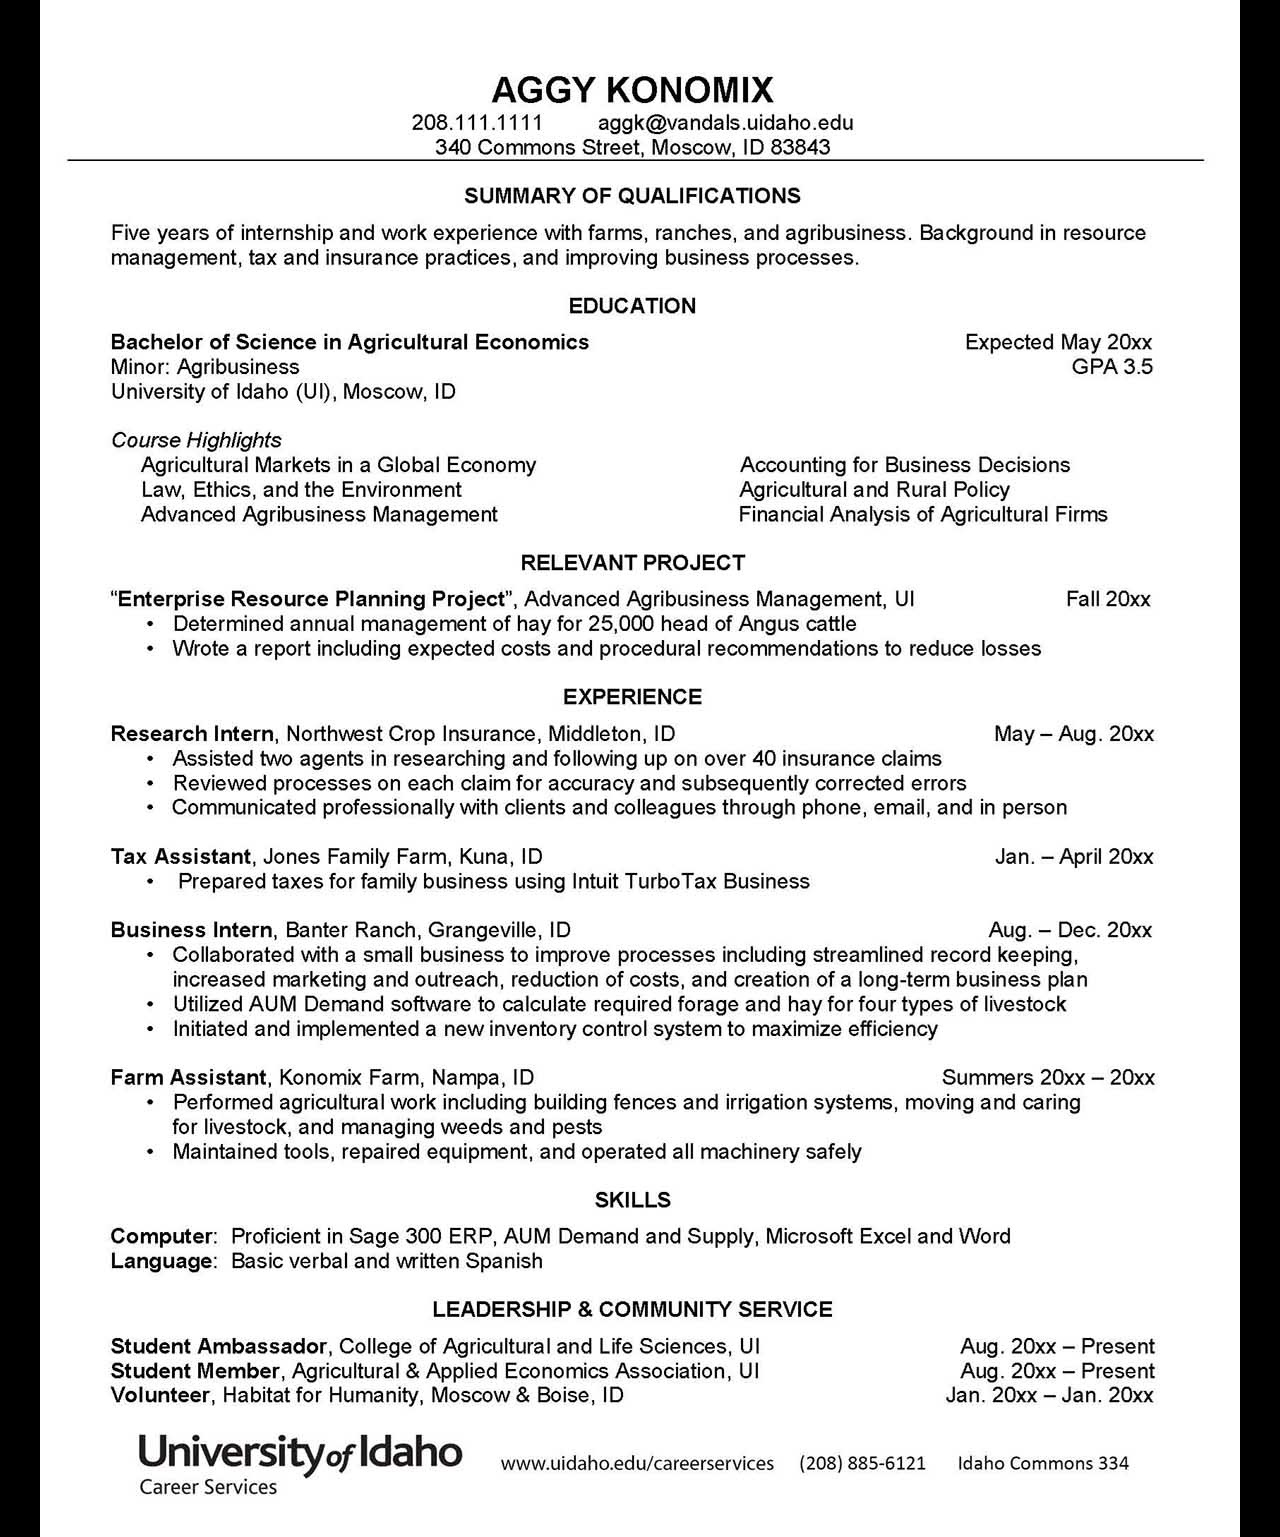 Resumes And Cvs Career Services University Of Idaho